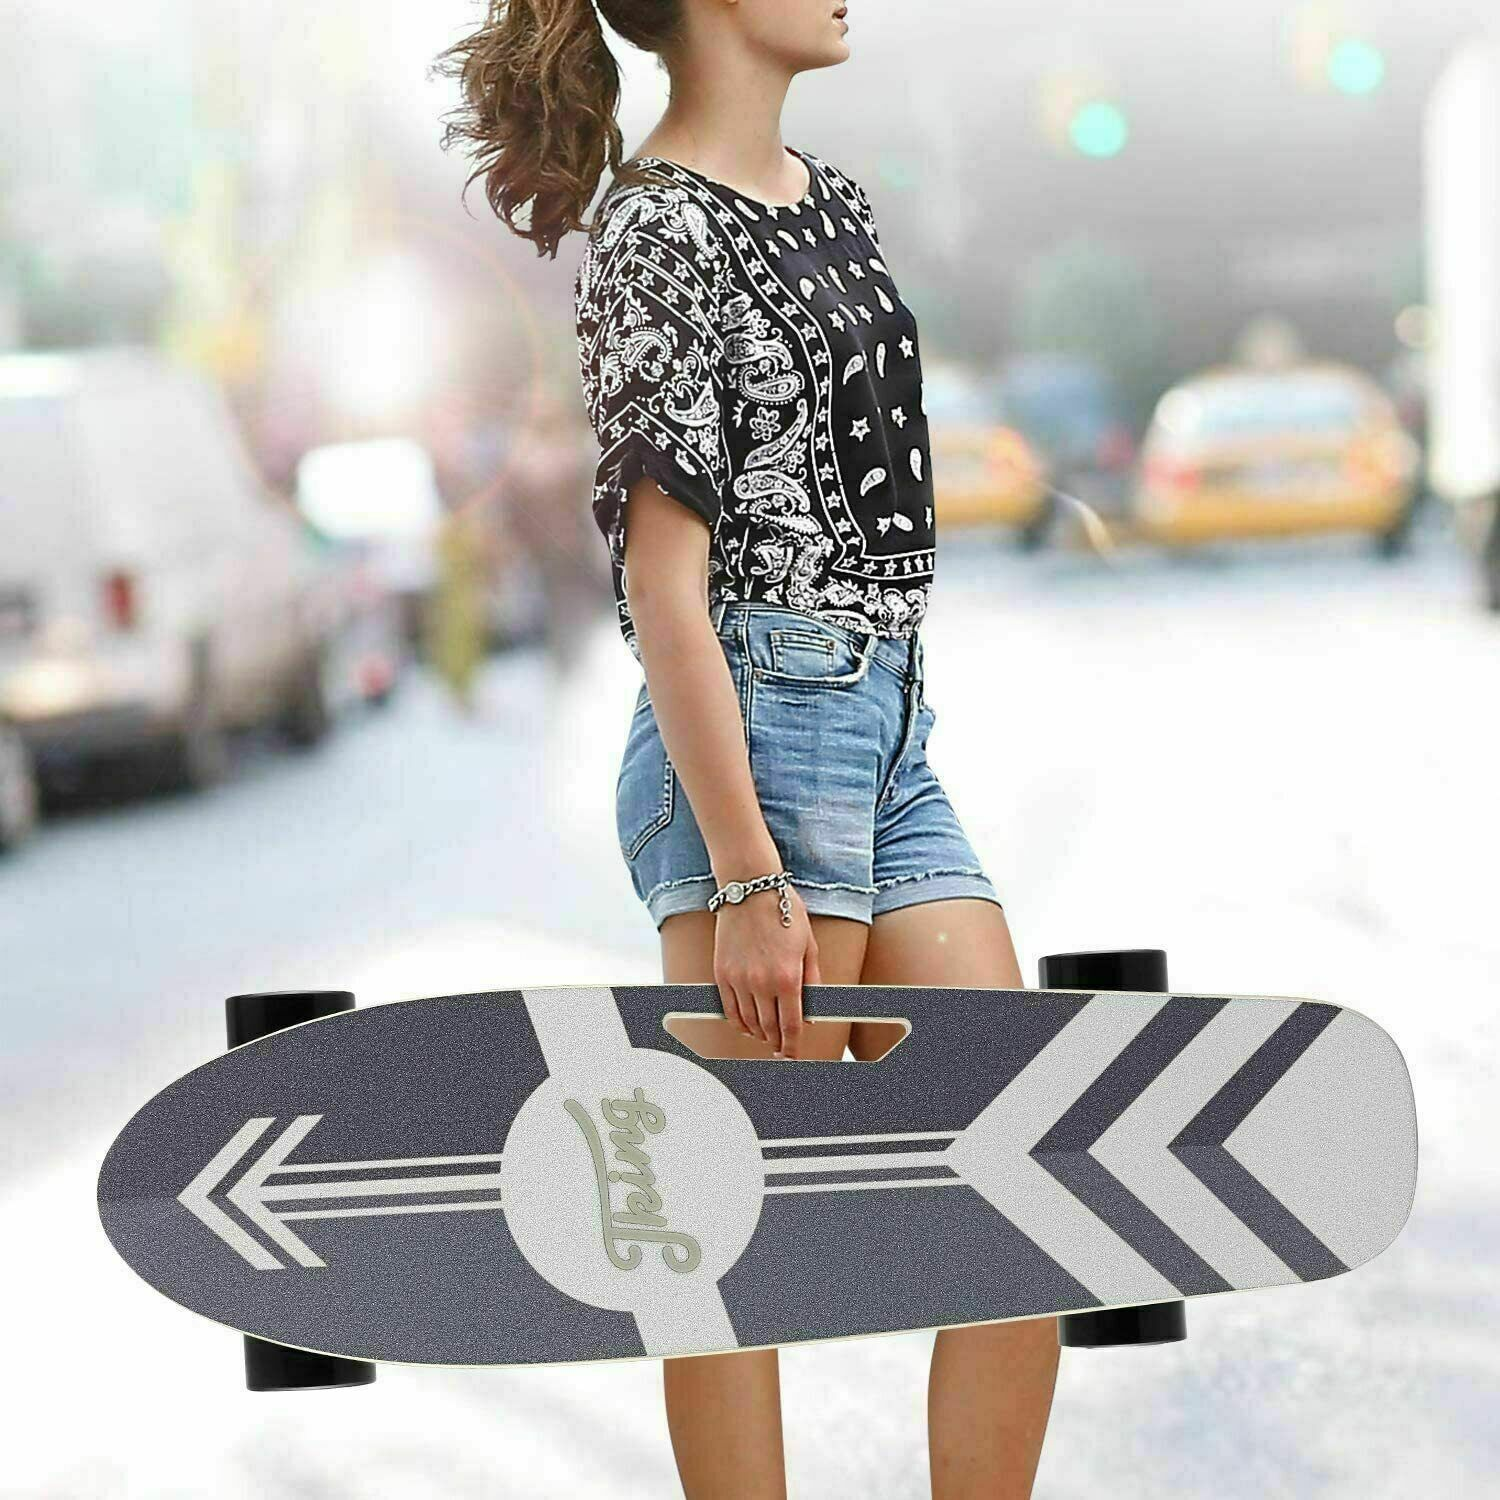 Electric Skateboard Power Motor Cruiser With Wireless Remote